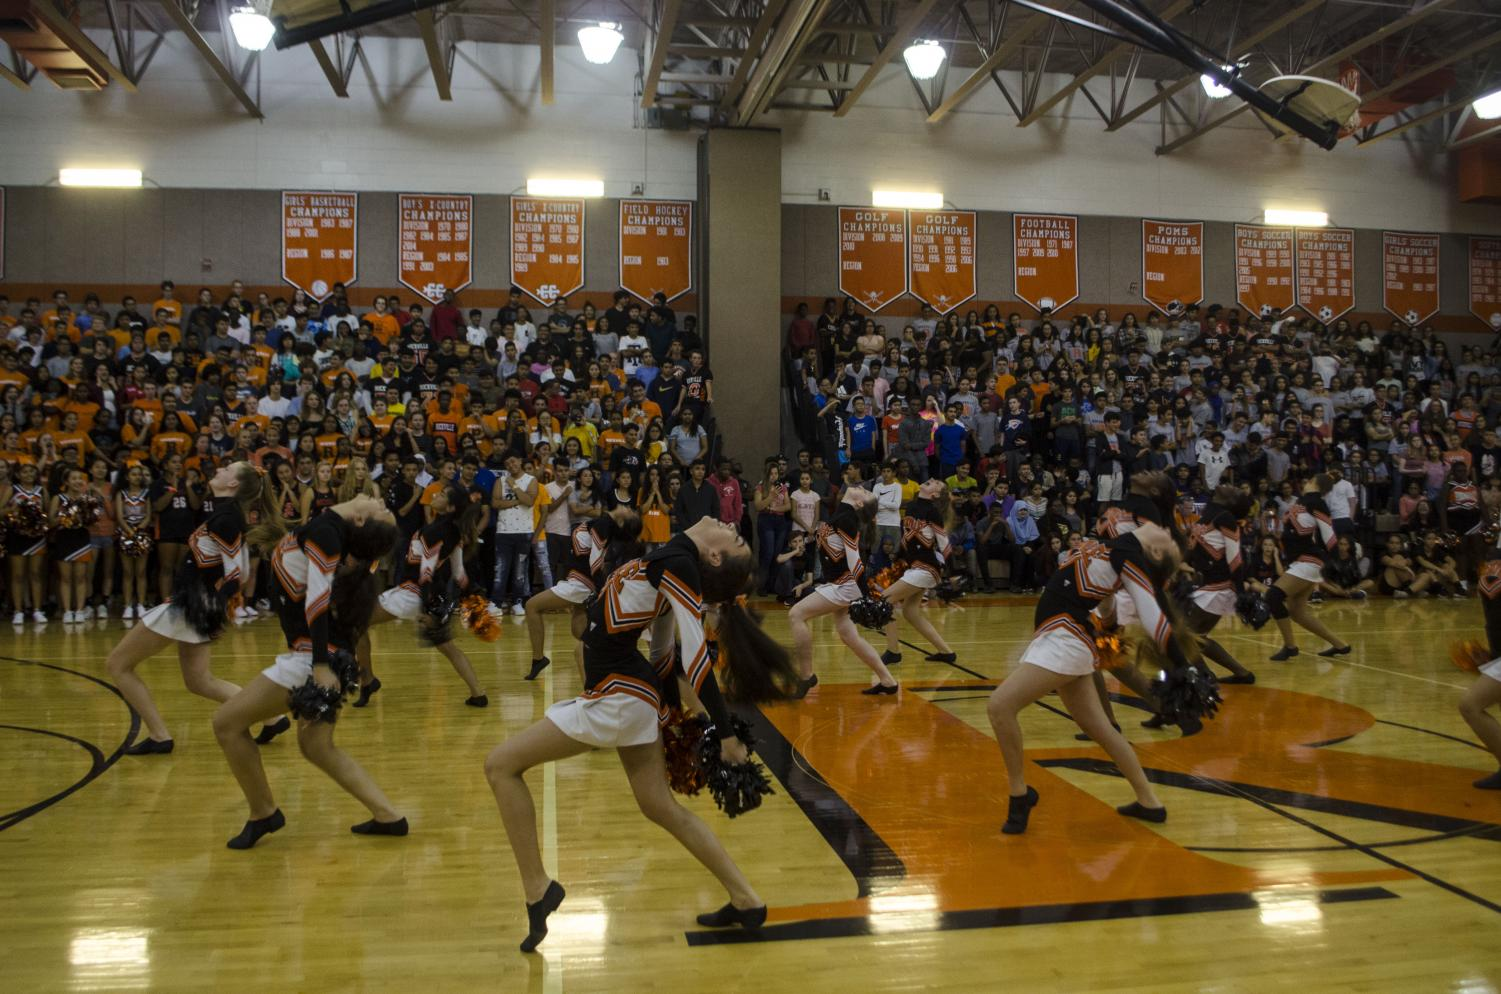 The+poms+team+performing+their+new+routine+for+the+student+body.+